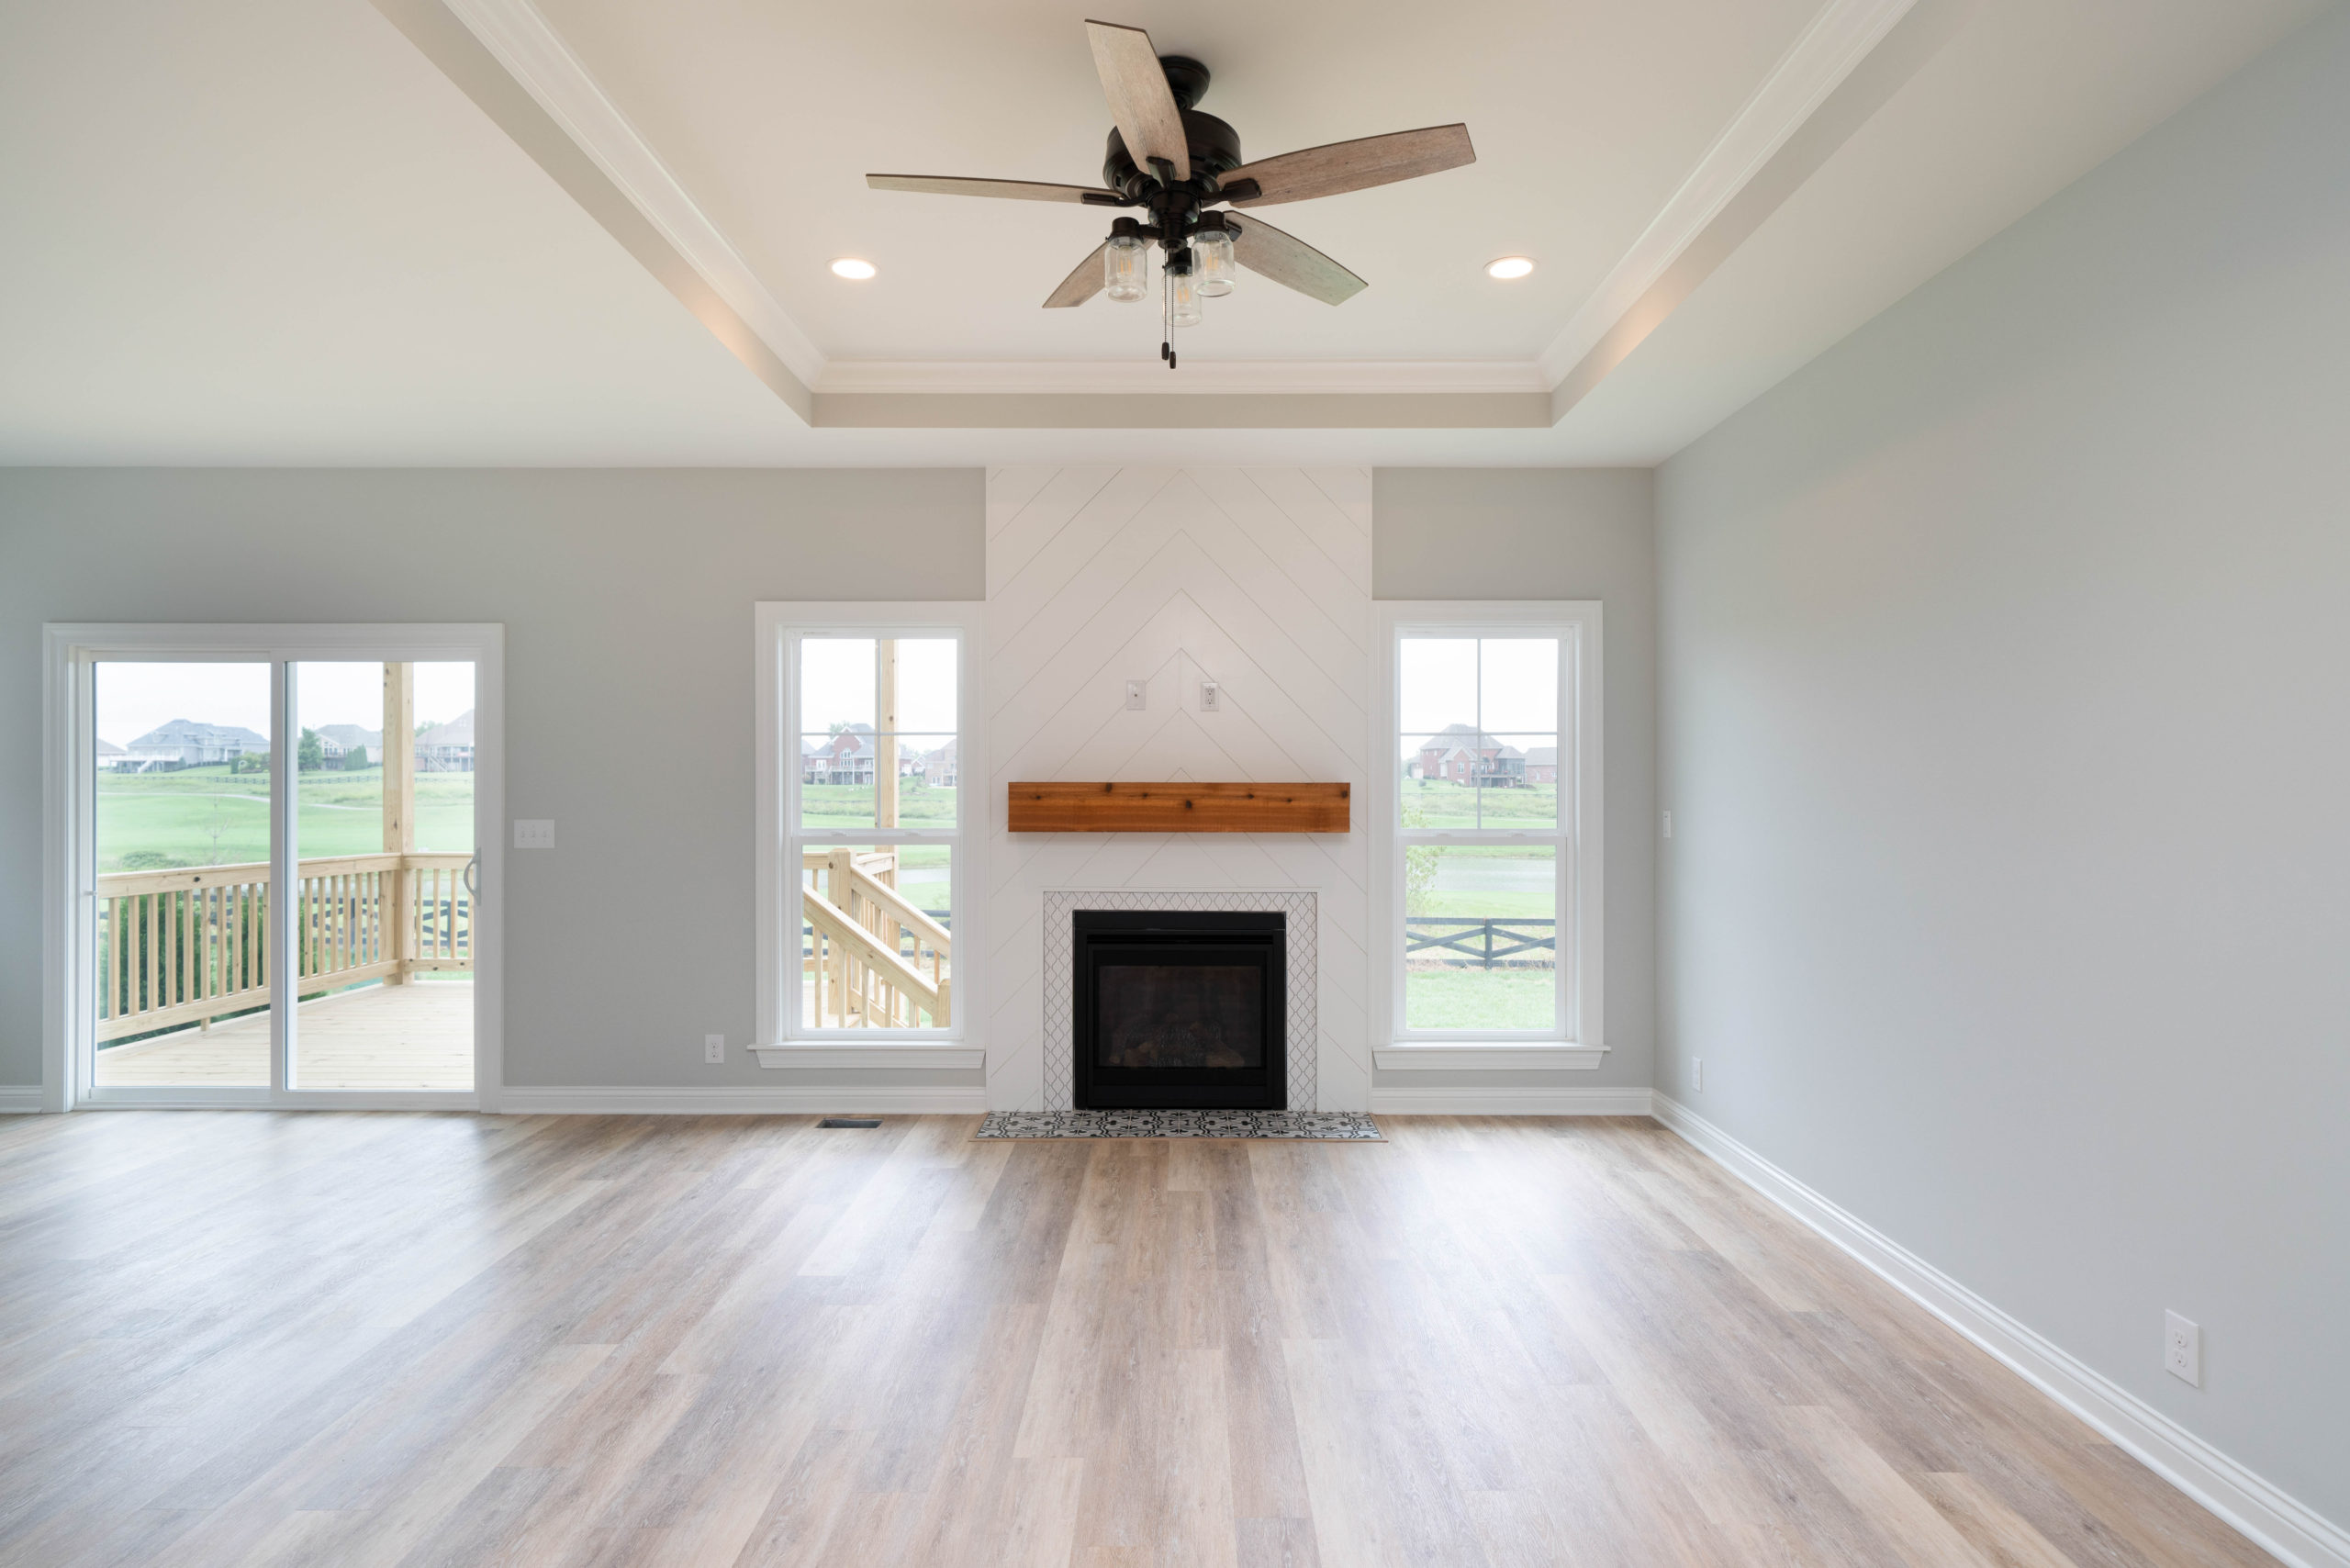 living room with tray ceiling and white shiplap fireplace with wood mantel